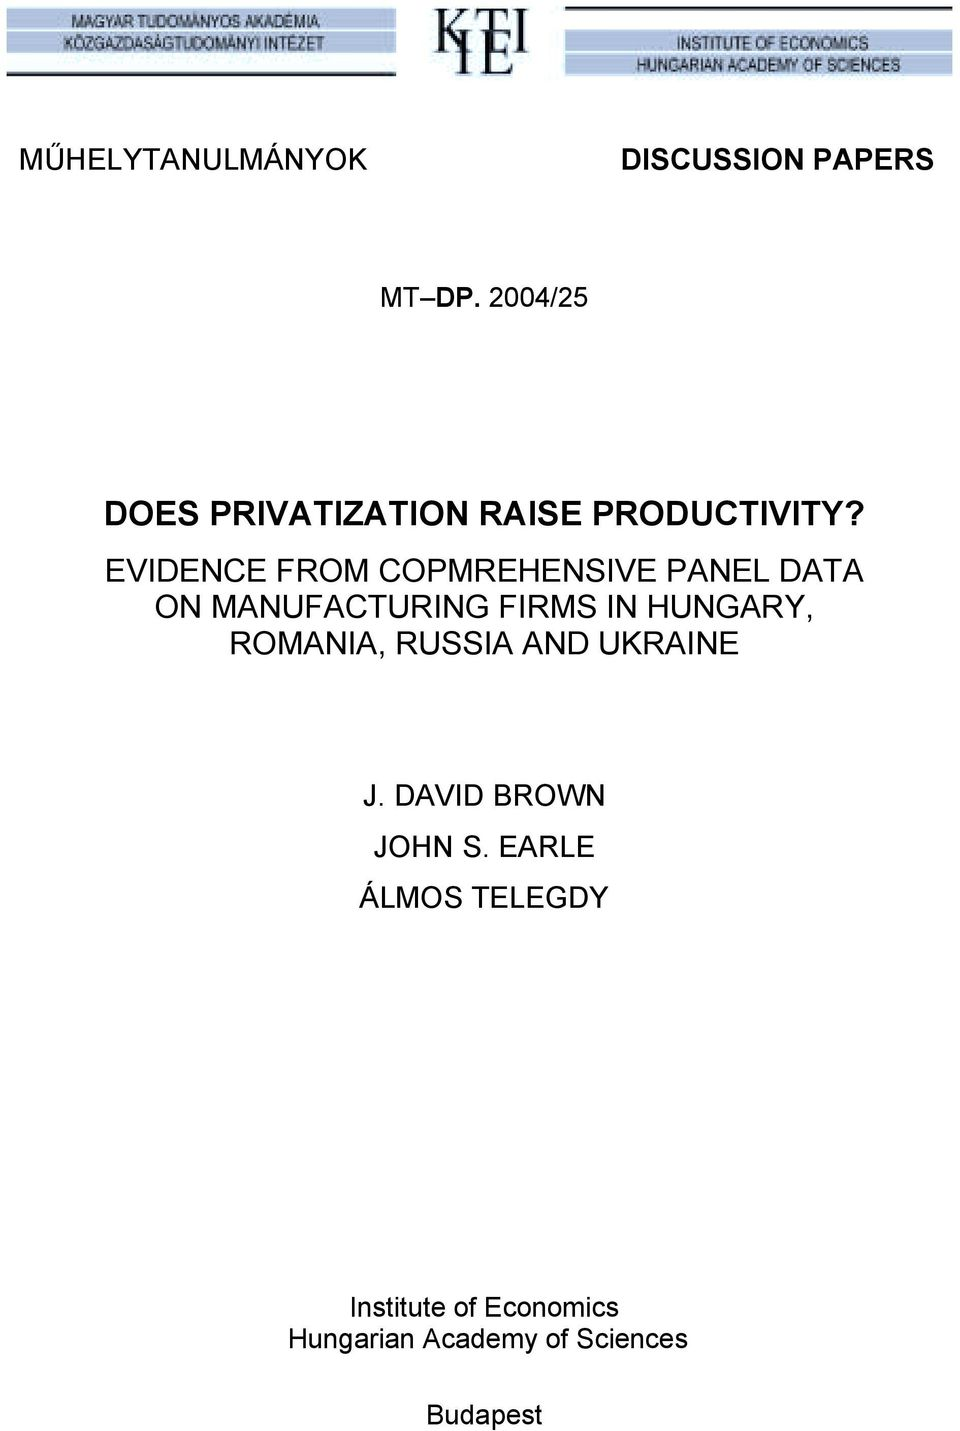 EVIDENCE FROM COPMREHENSIVE PANEL DATA ON MANUFACTURING FIRMS IN HUNGARY,